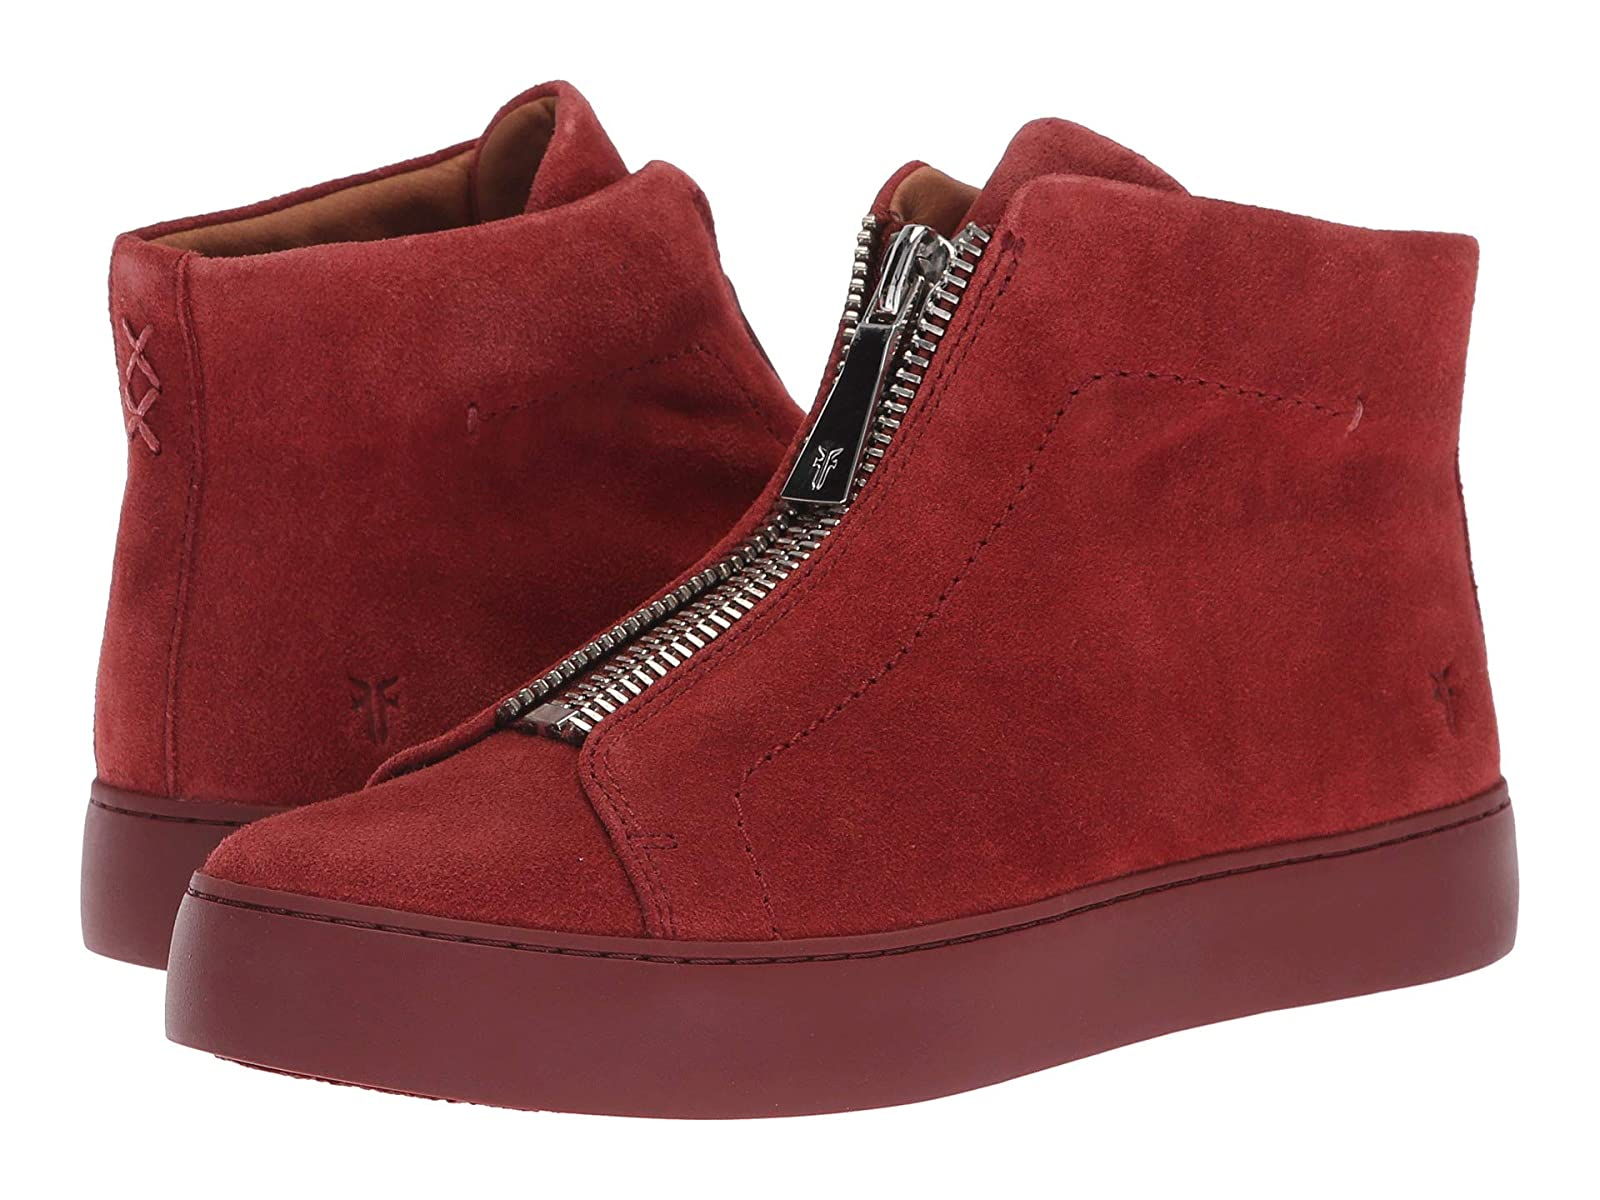 Mr/Ms:Frye Lena Zip High:Fast delivery delivery delivery ea7576